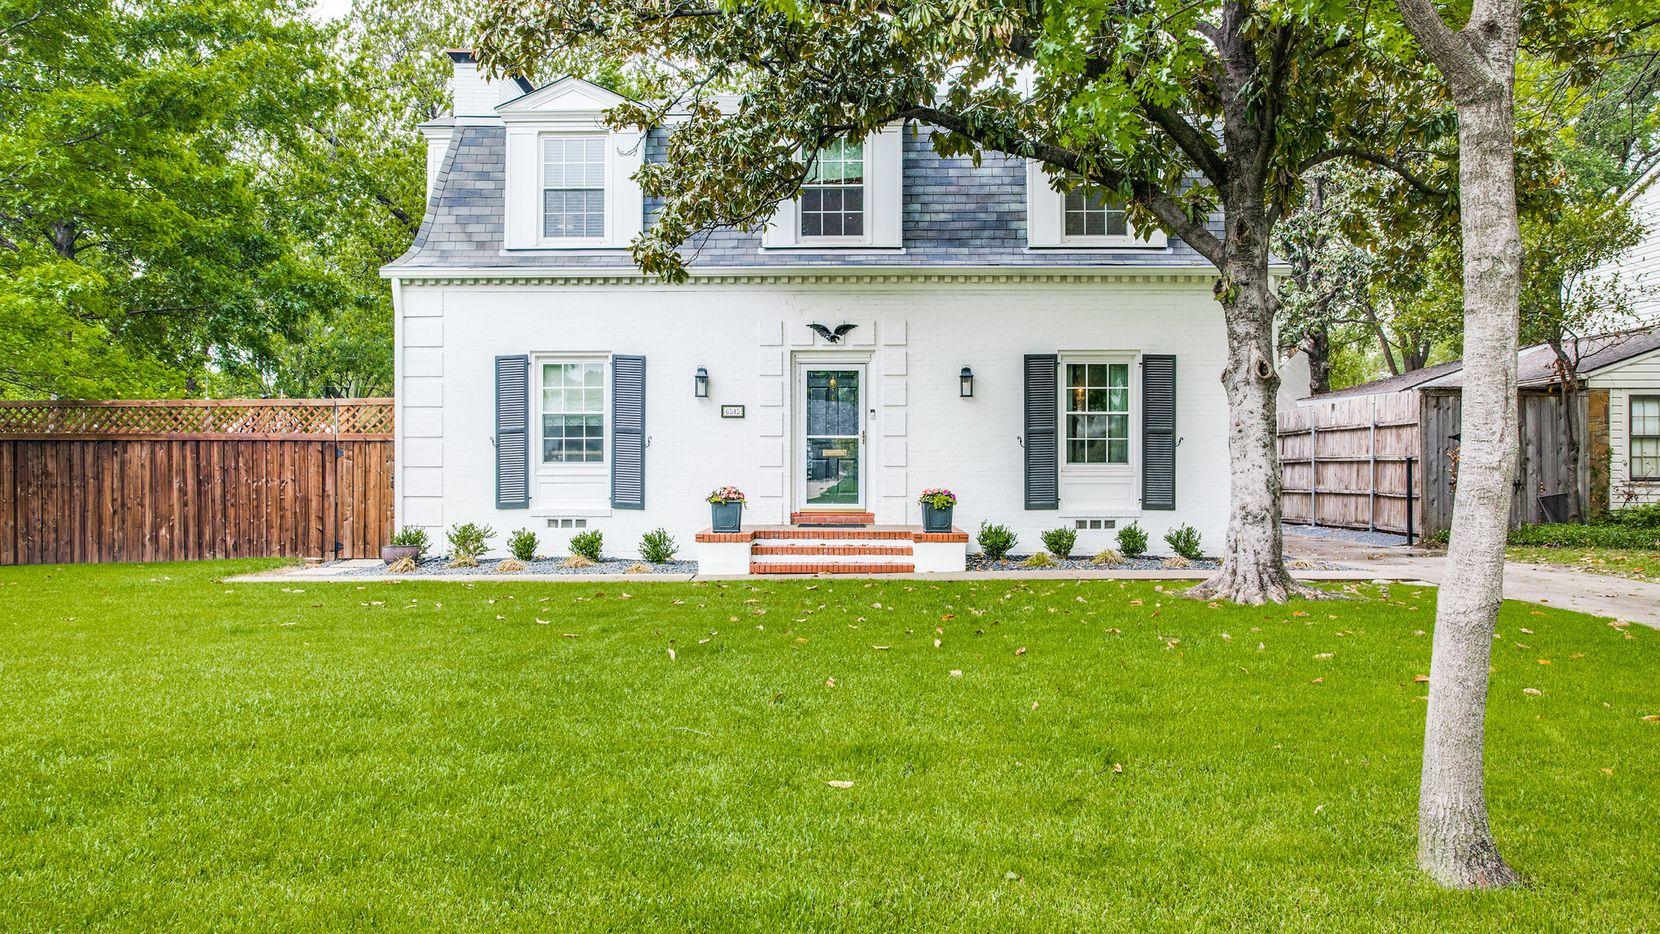 An expert agent with Allie Beth Allman & Associates can help interested buyers find their dream home.